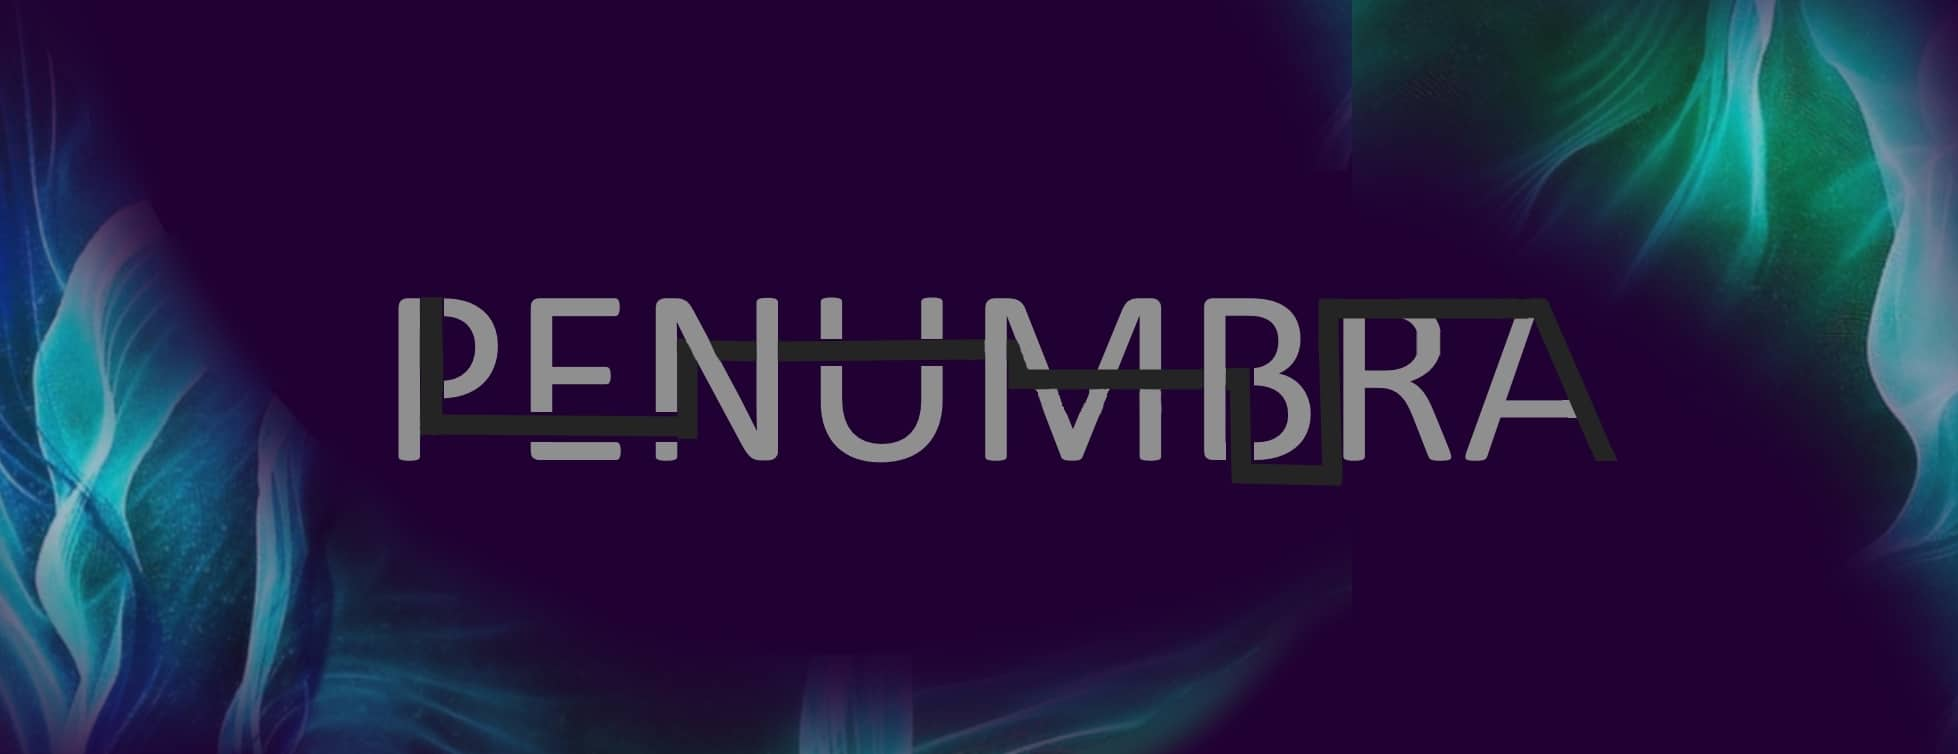 PENUMBRA - ELUDE Adventure Escape Rooms